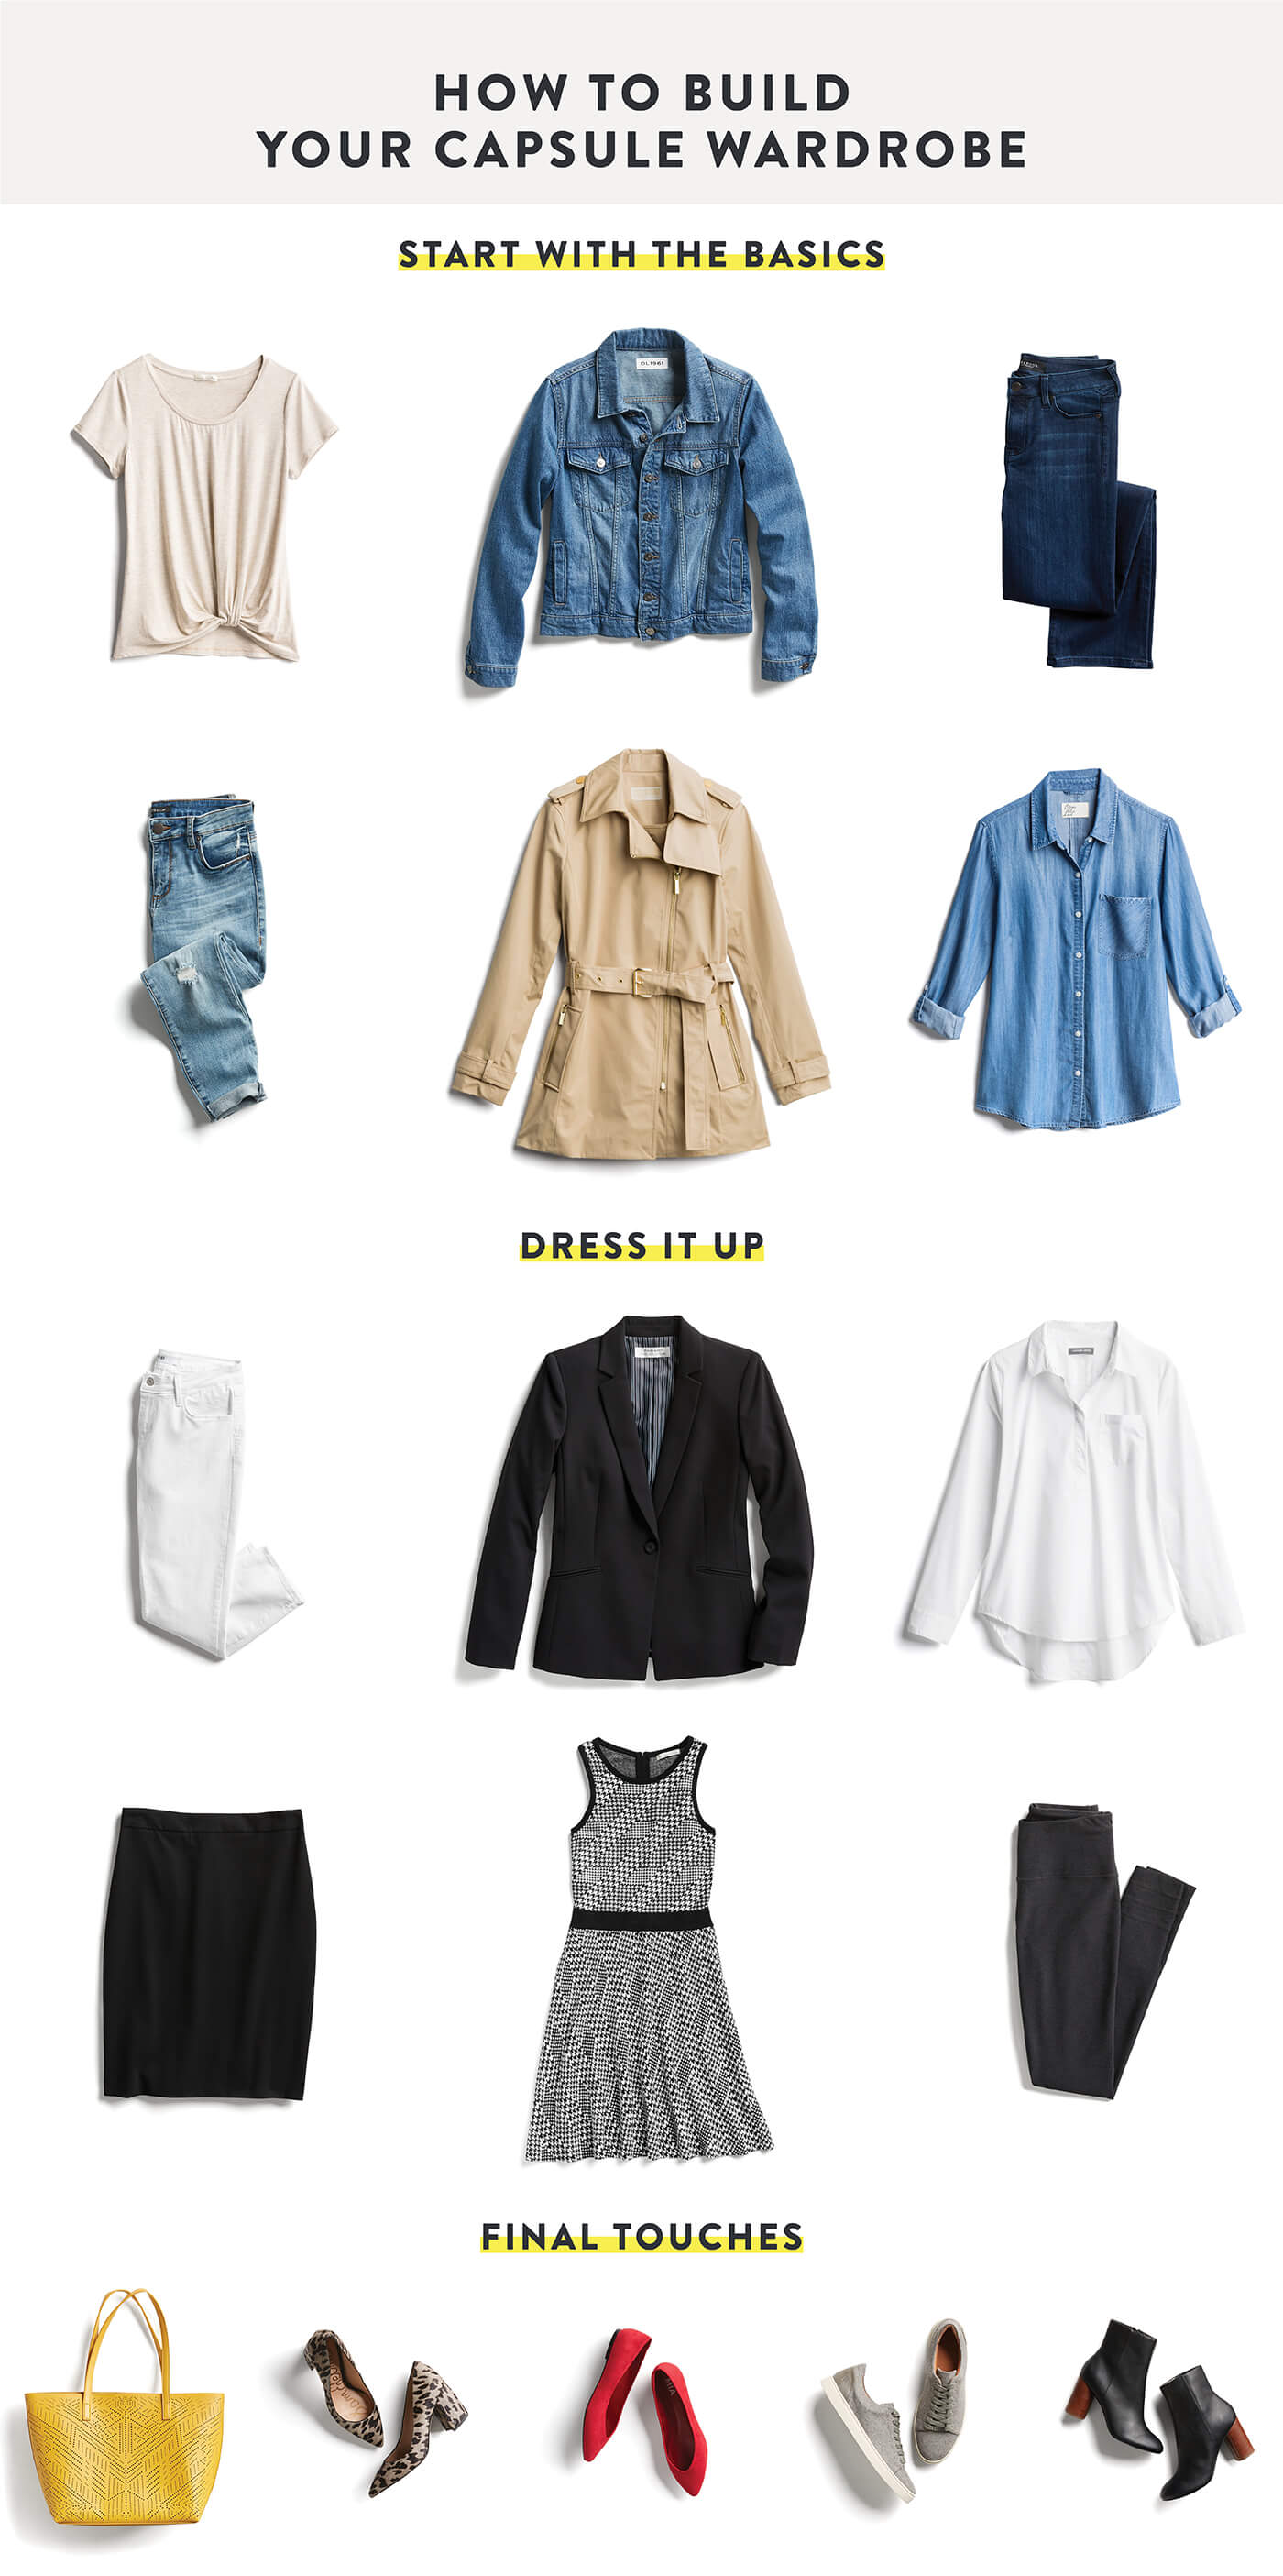 676560886e07 What Tops to Have In A Capsule Wardrobe